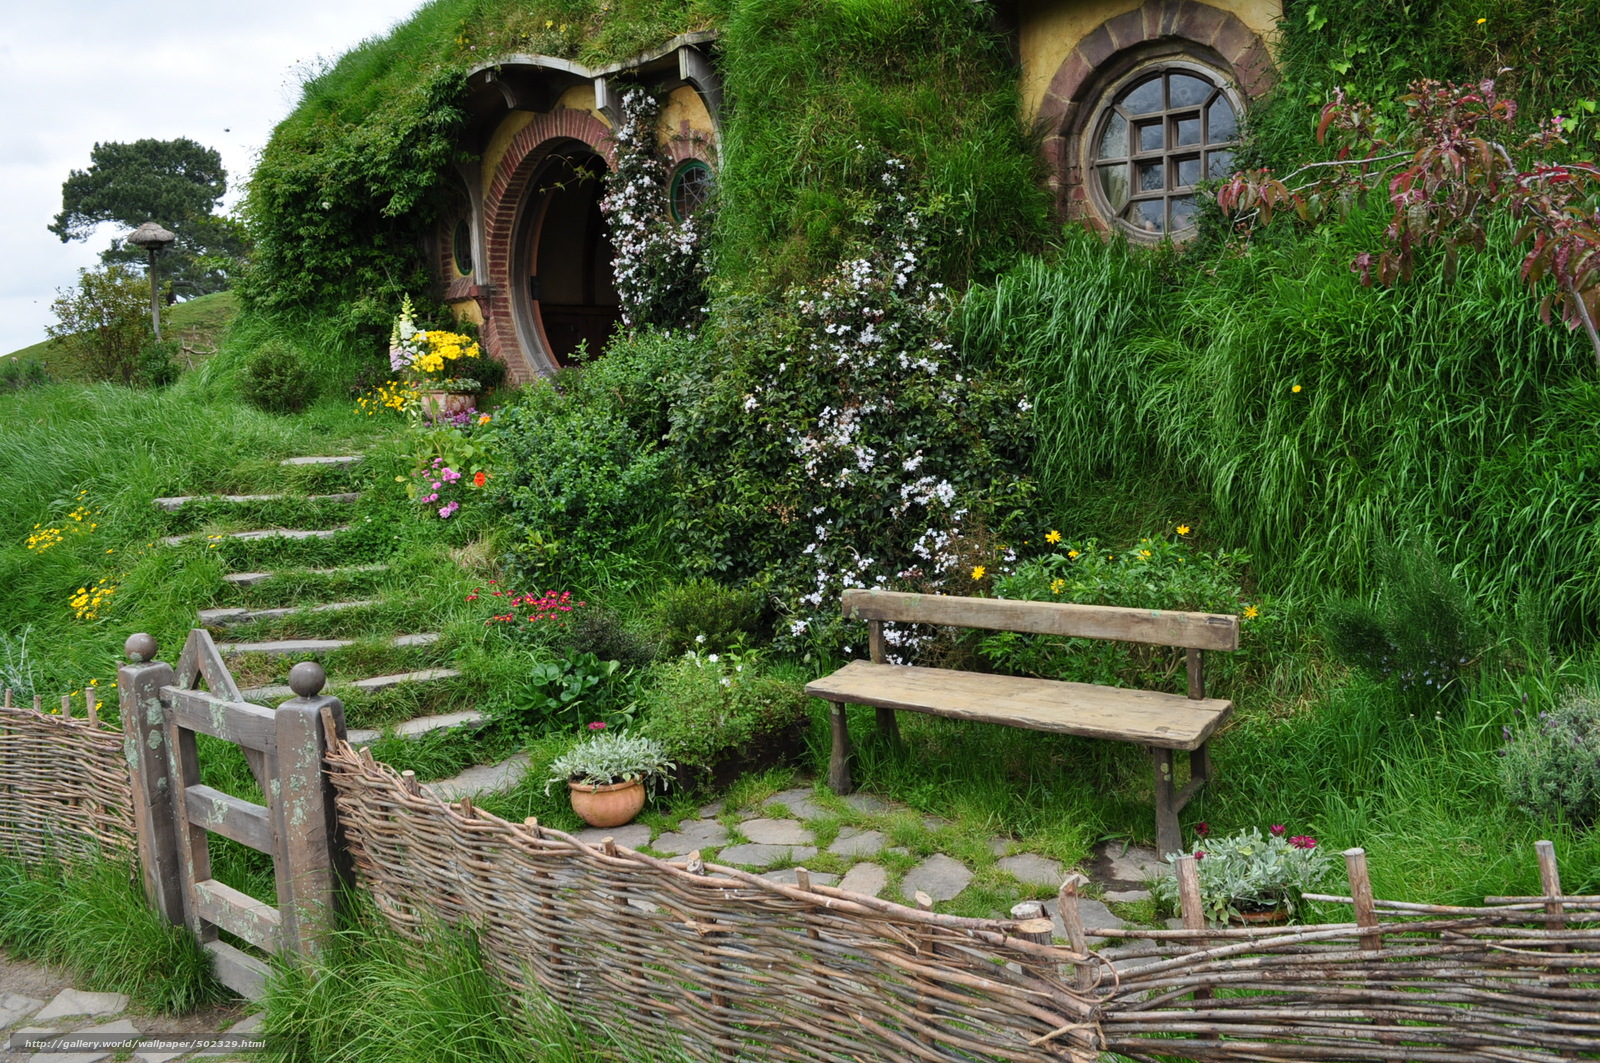 Download wallpaper new zealand hobbit house landscape for New house wallpaper